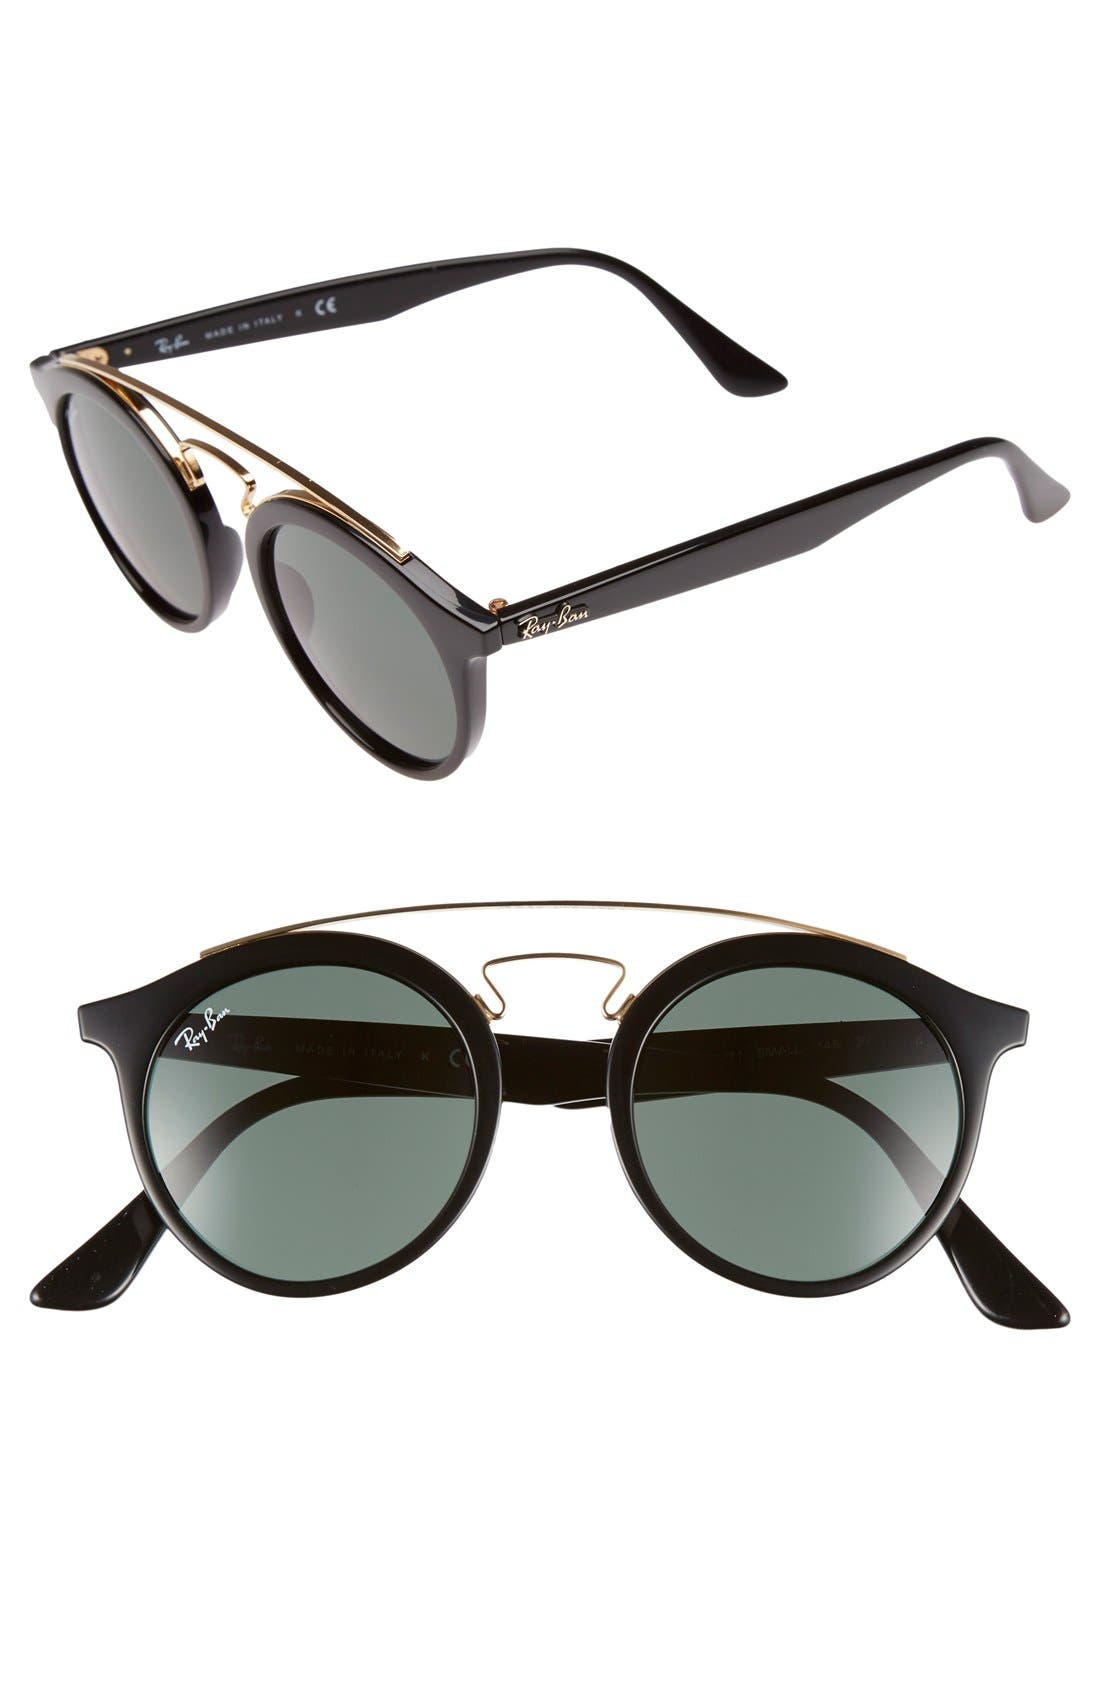 Highstreet 46mm Sunglasses,                             Main thumbnail 1, color,                             Black